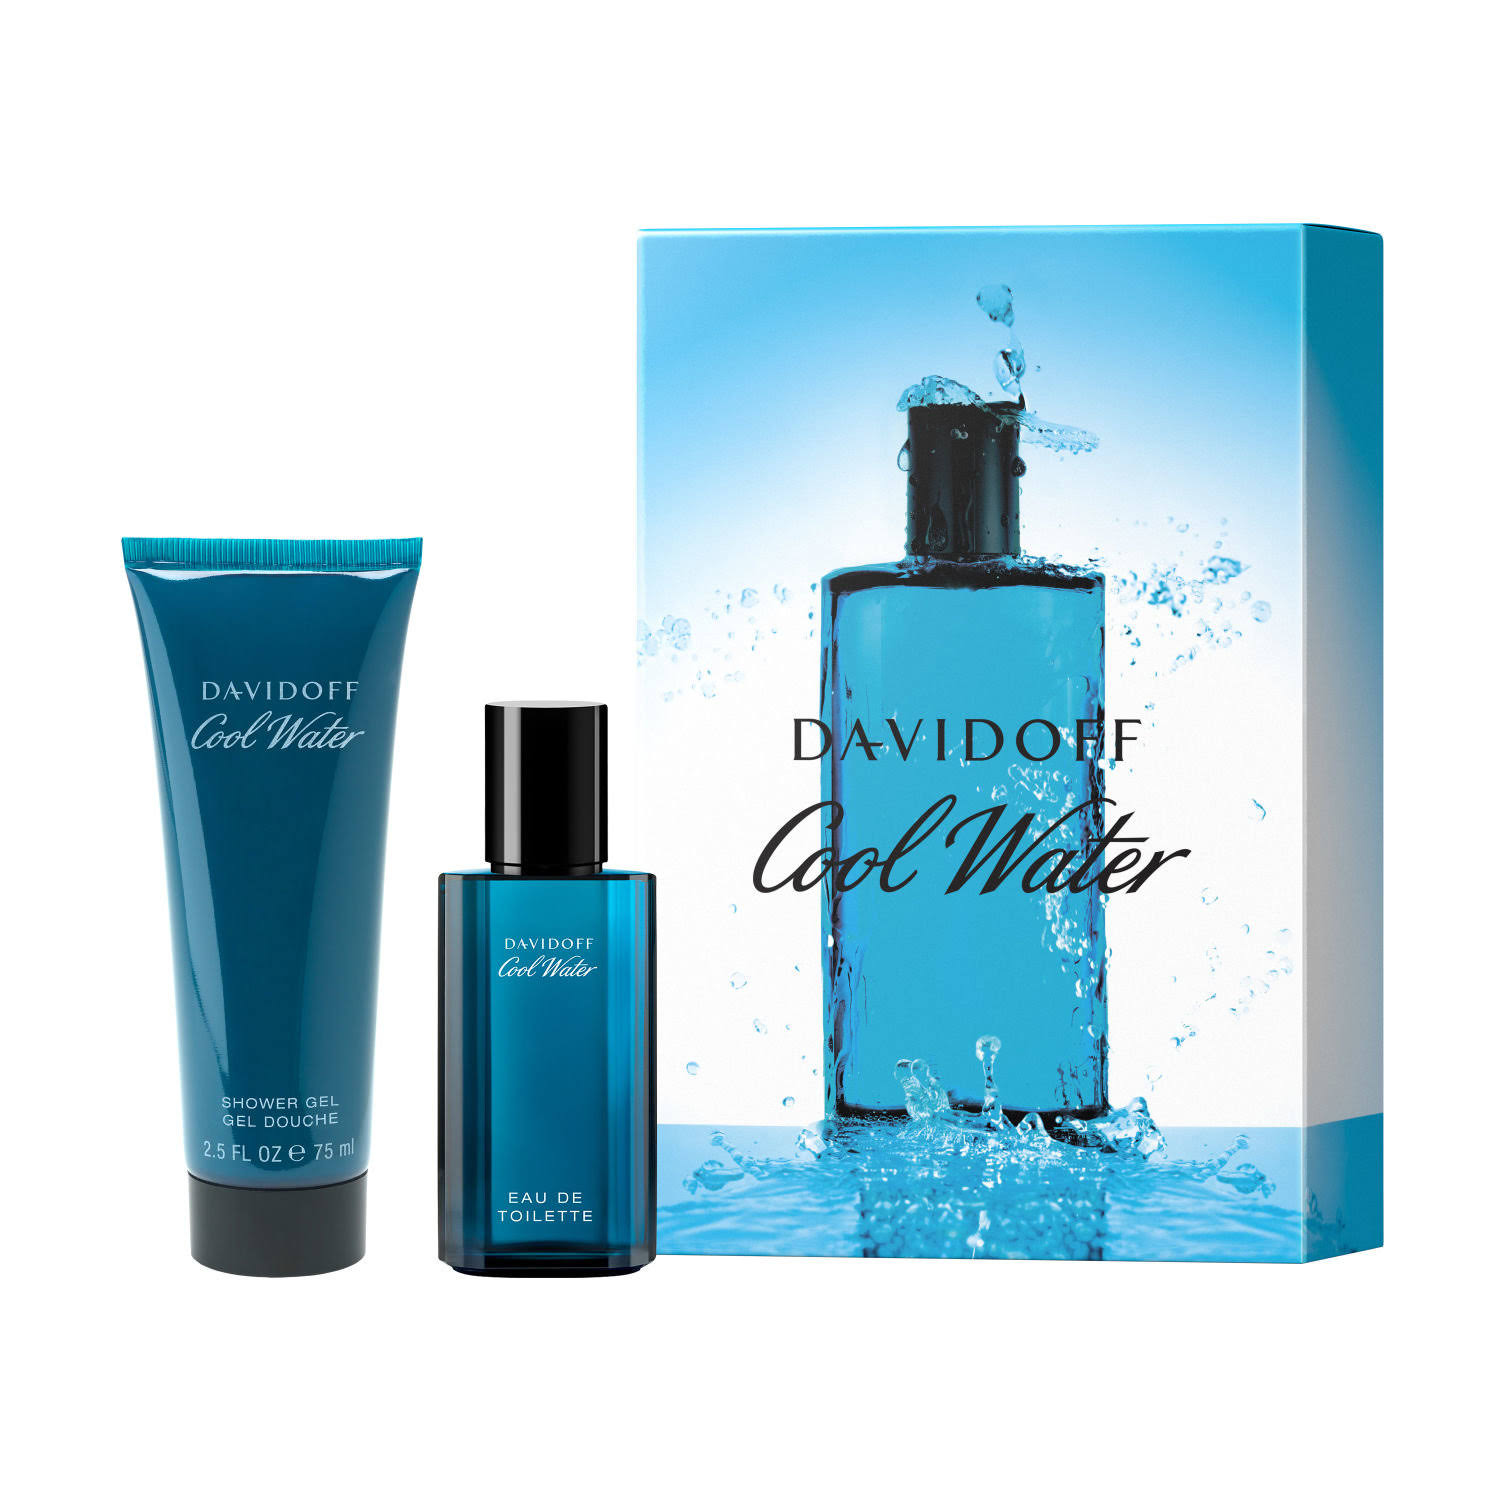 Davidoff Men's Cool Water Eau De Toilette Gift Set - 2pcs